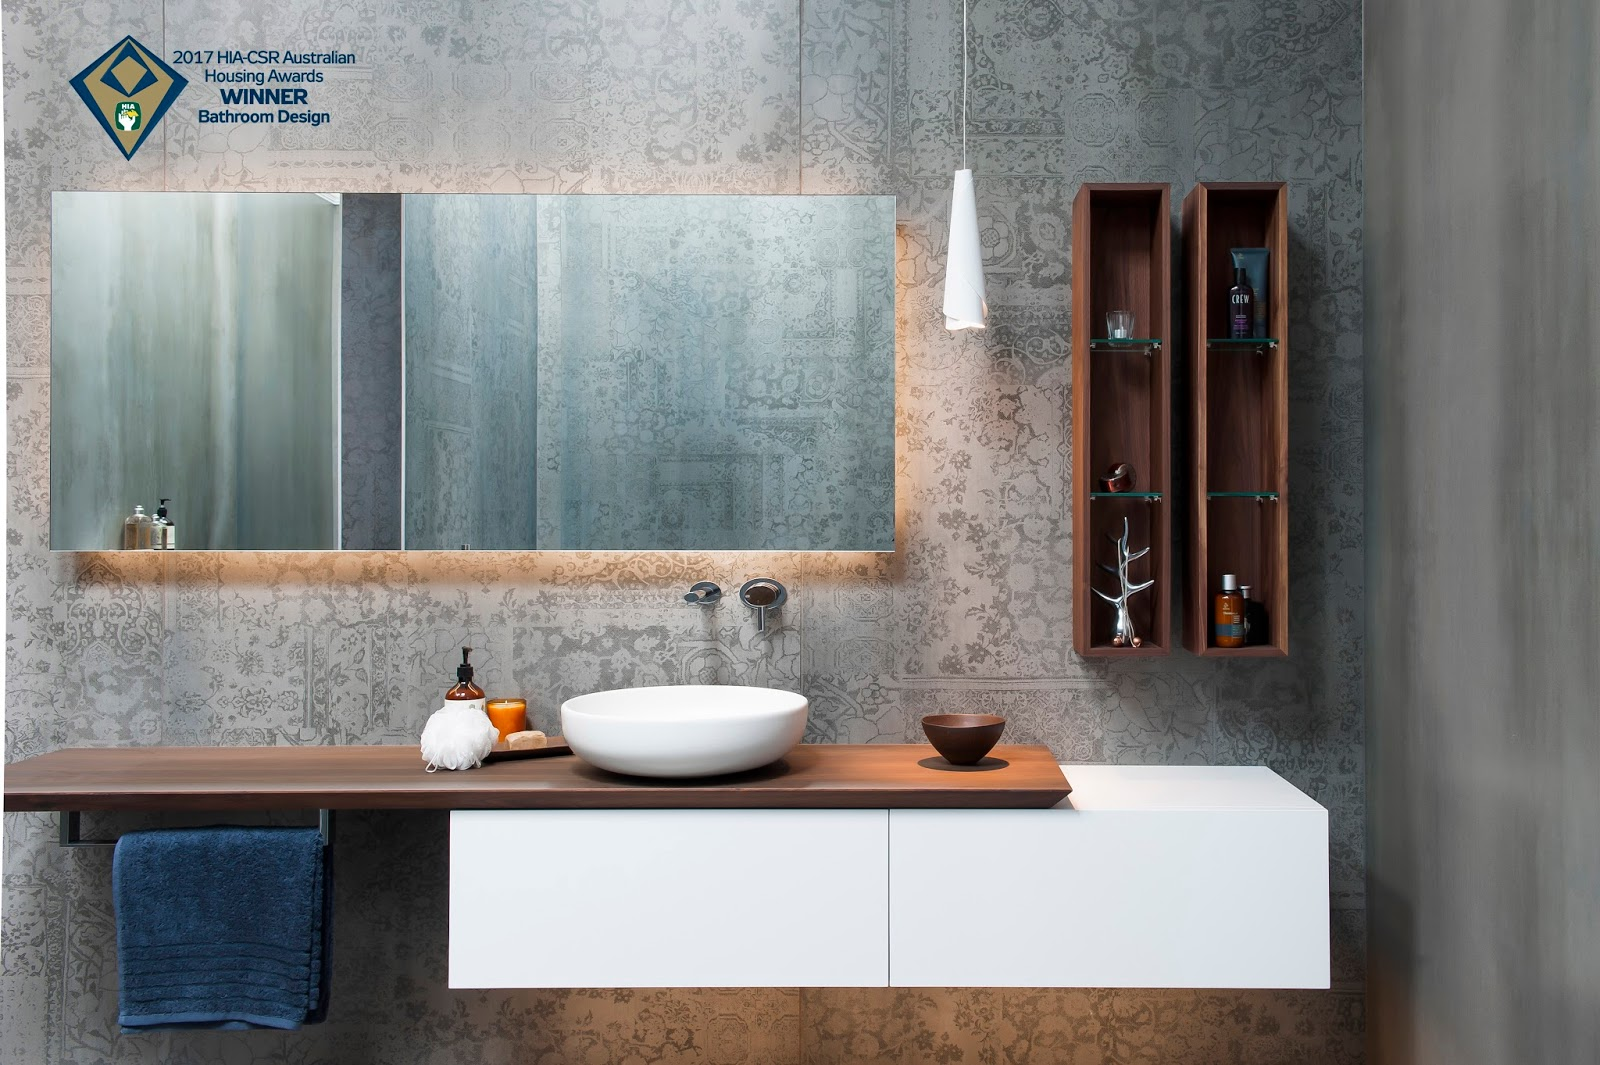 Minosa australian hia bathroom design of the year 2017 for In design bathrooms